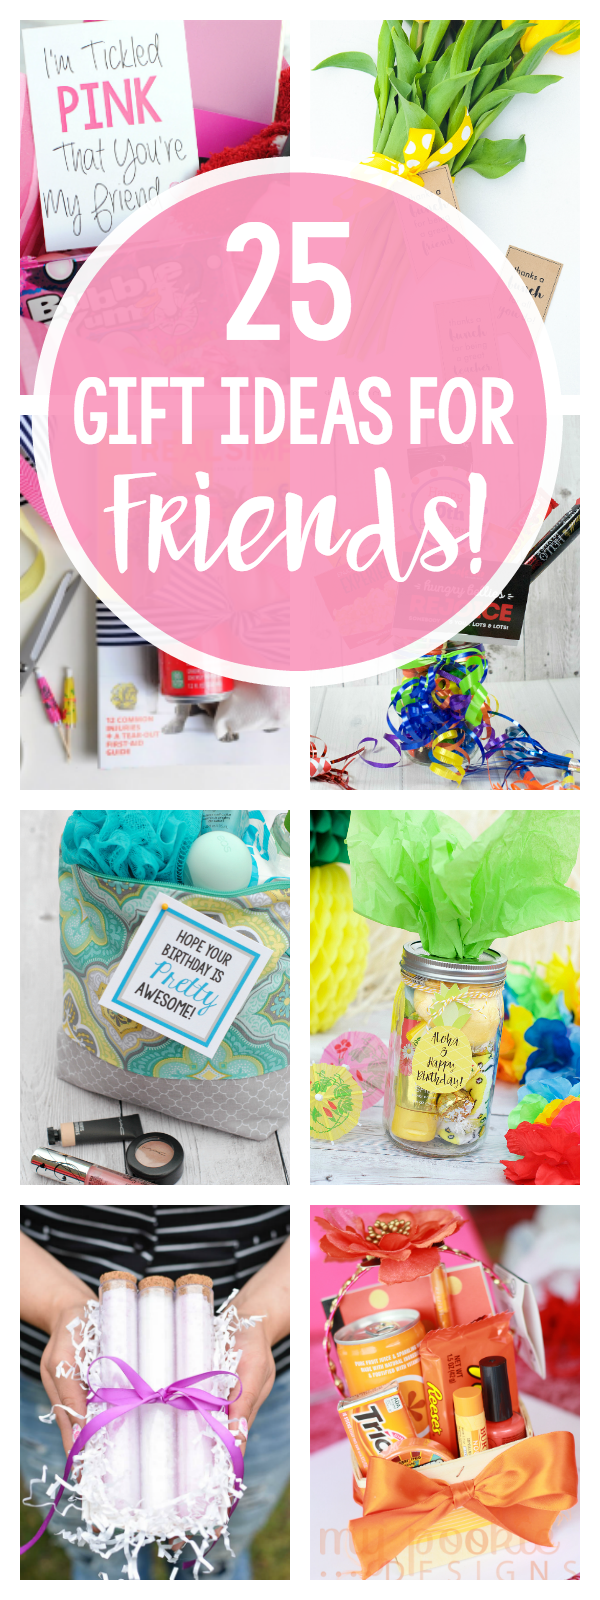 25 Gifts Ideas for Friends - Fun-Squared